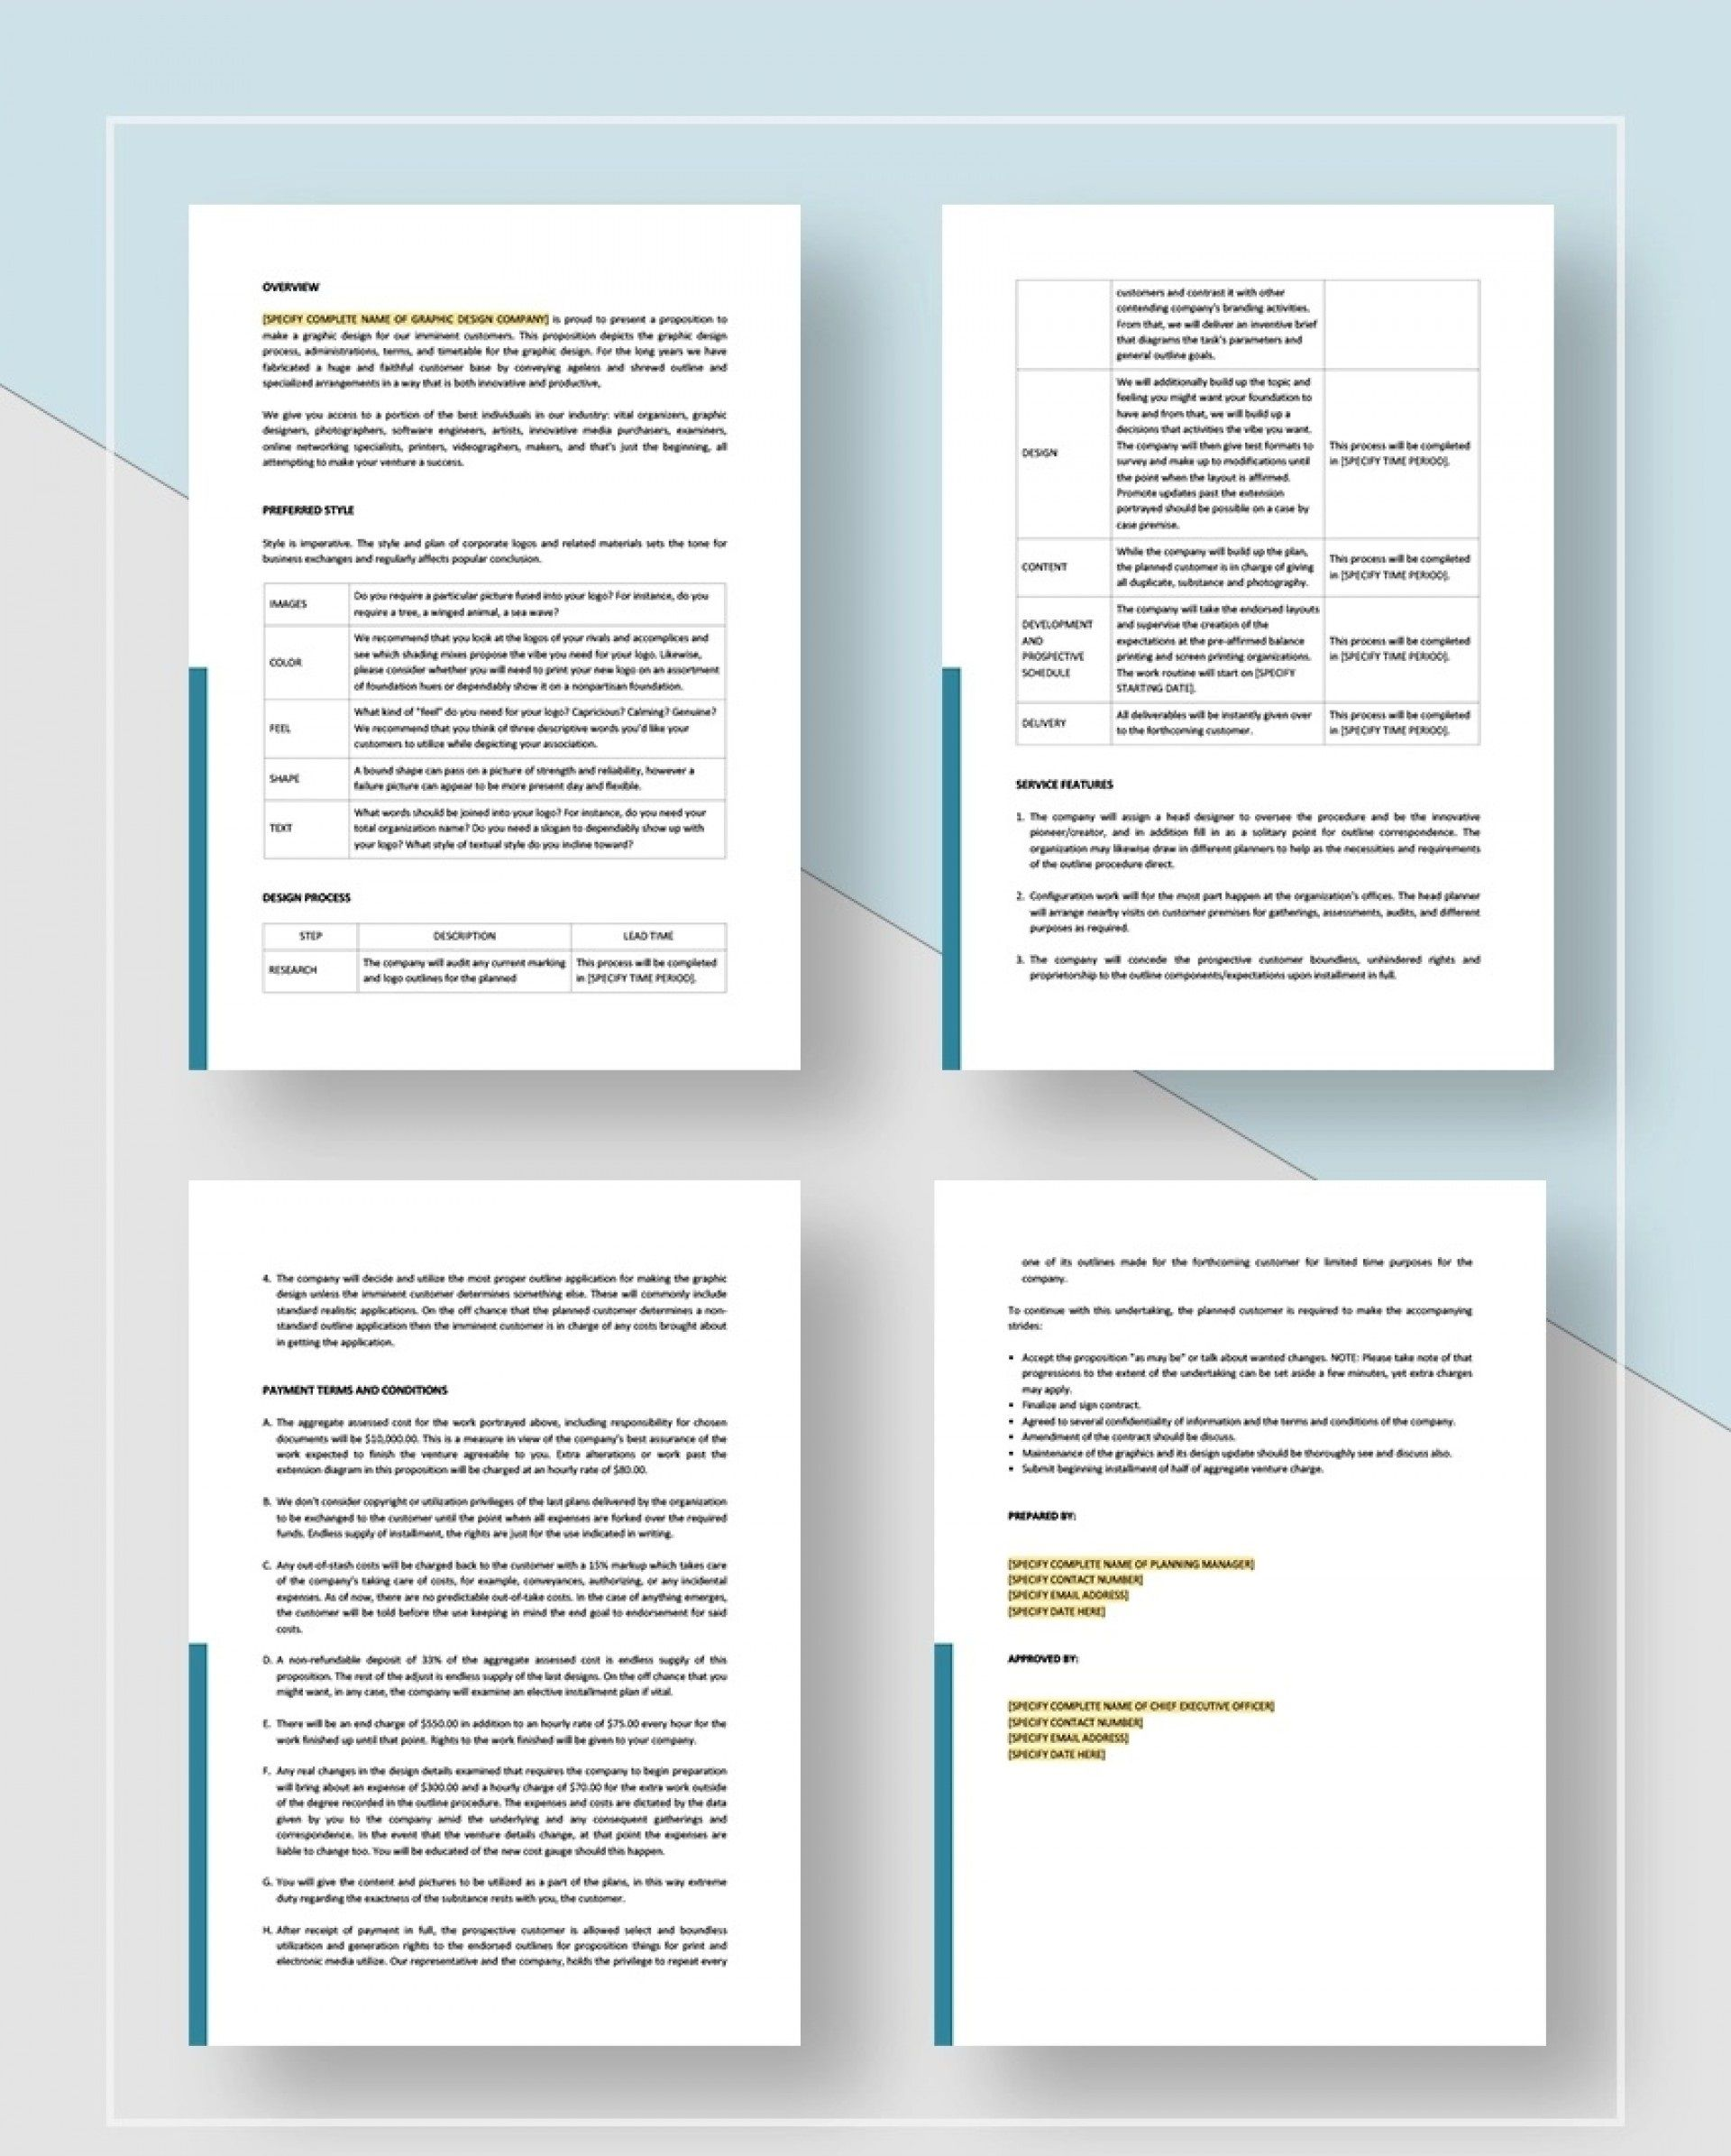 008 Excellent Graphic Design Proposal Sample High Definition  Pdf Free Template IndesignFull